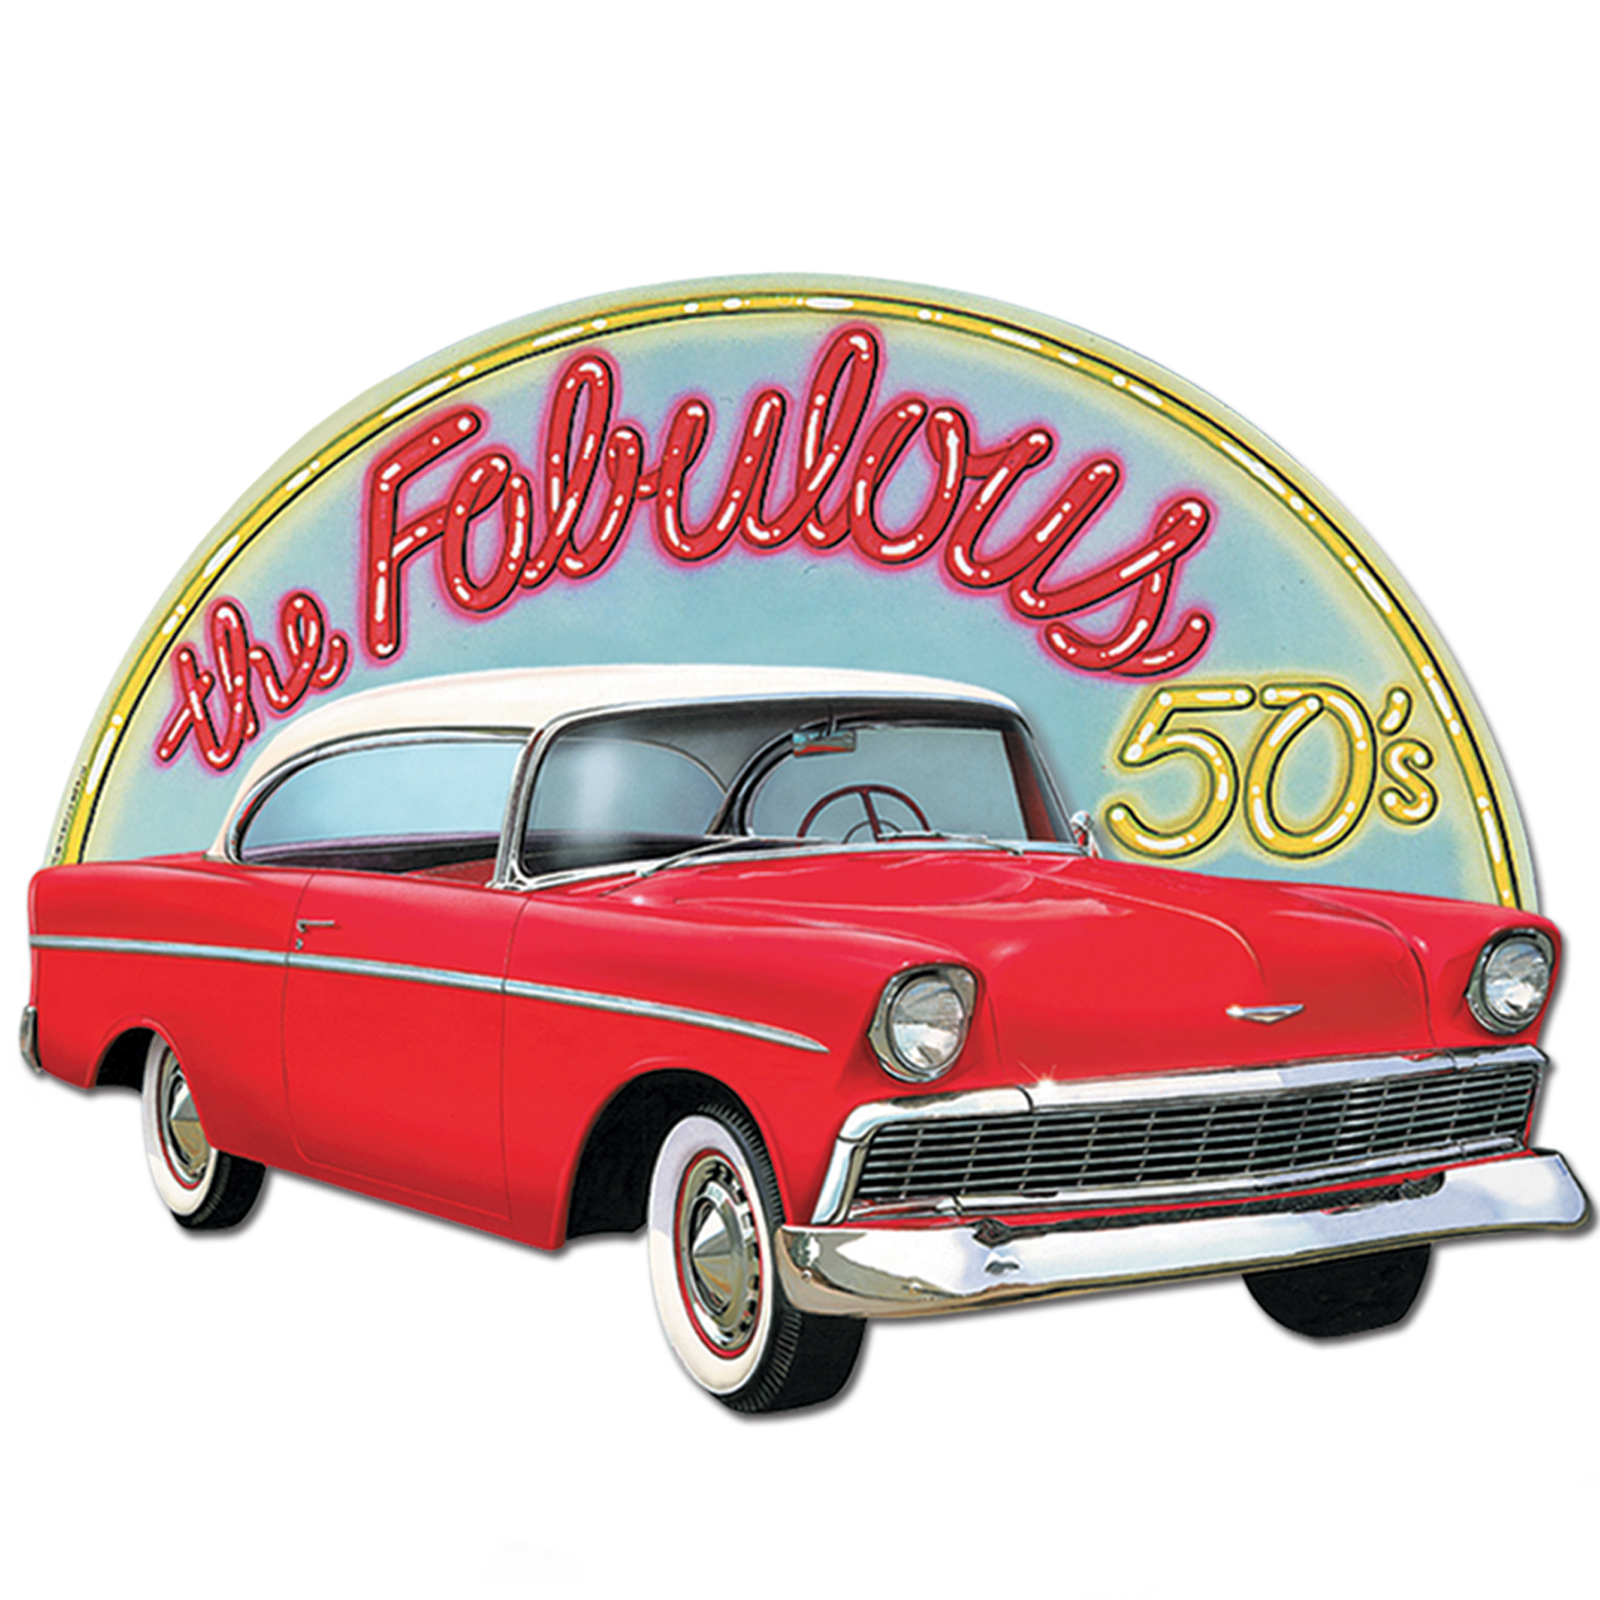 Free 1950s Diner Cliparts, Download Free Clip Art, Free Clip.